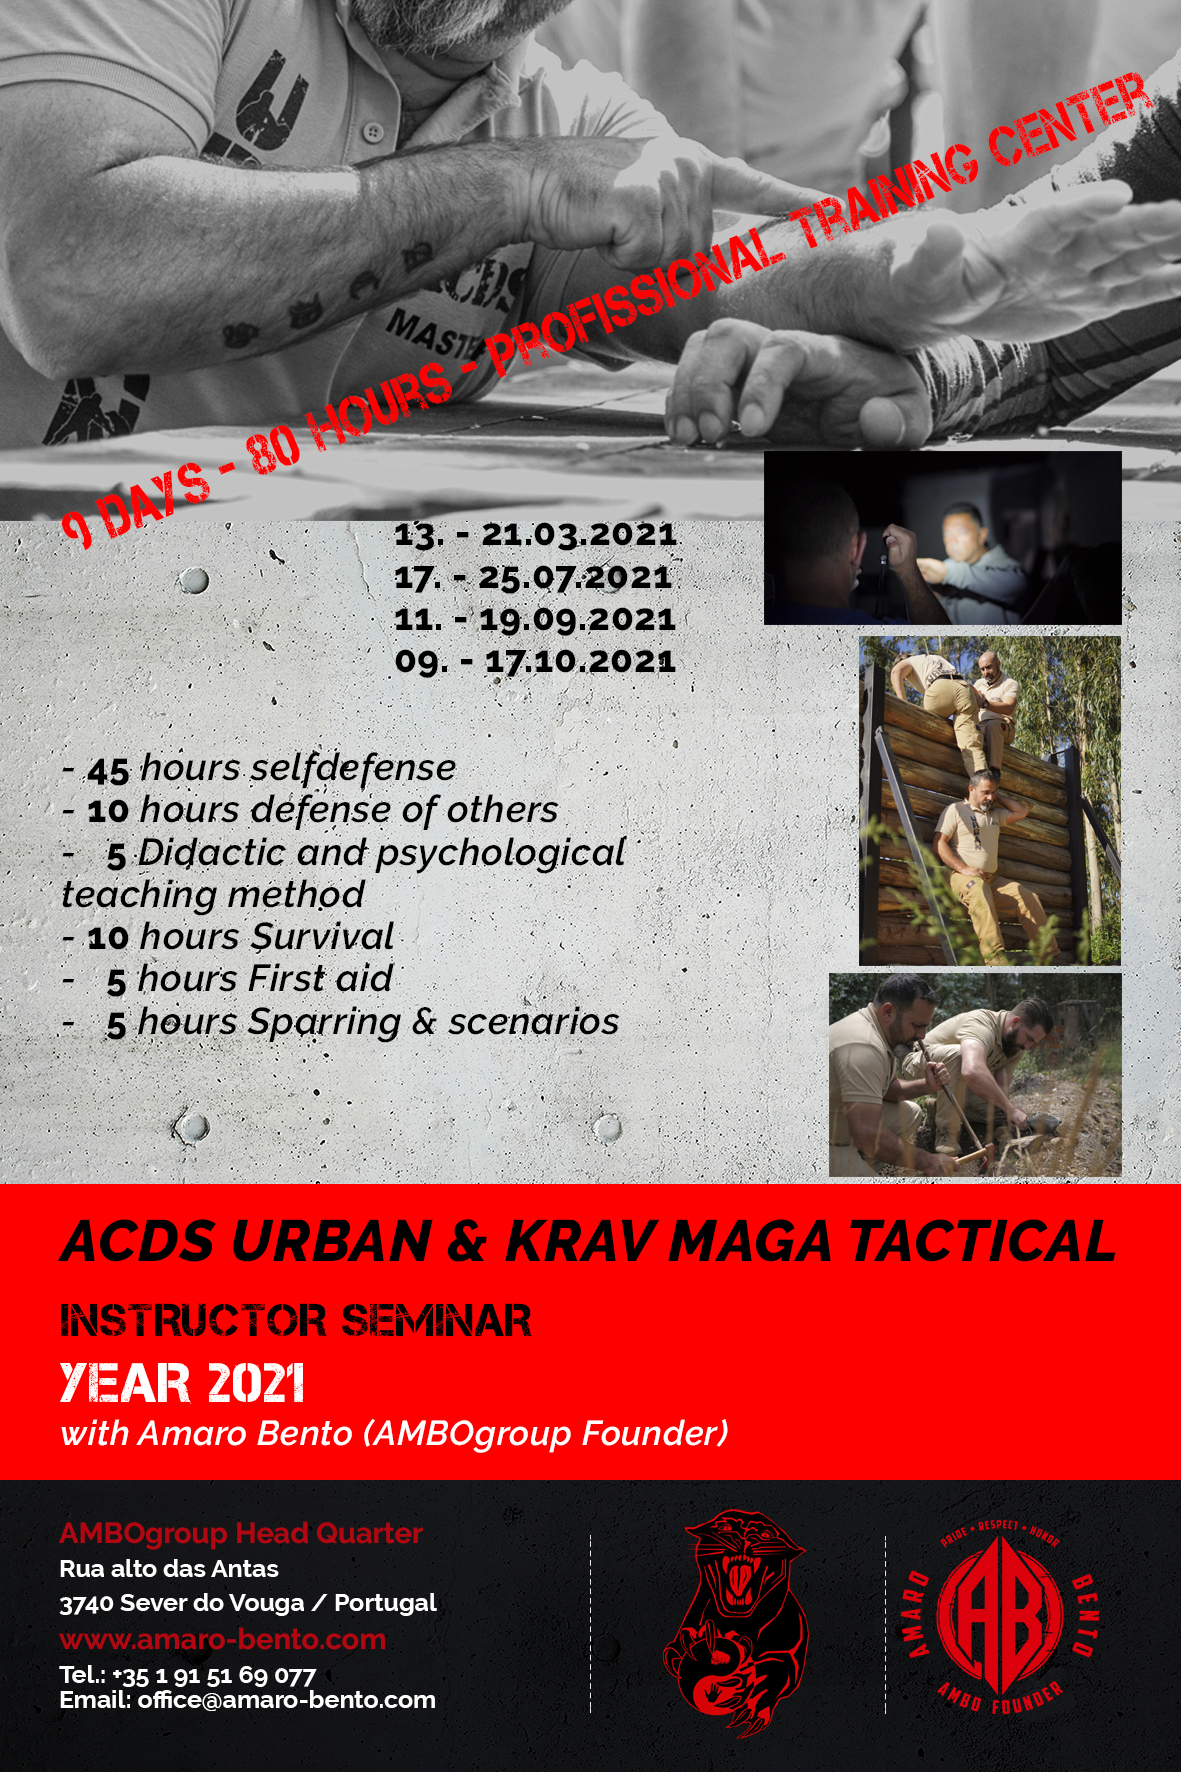 ACDS Urban and Krav Maga Tactical Instructor 2021